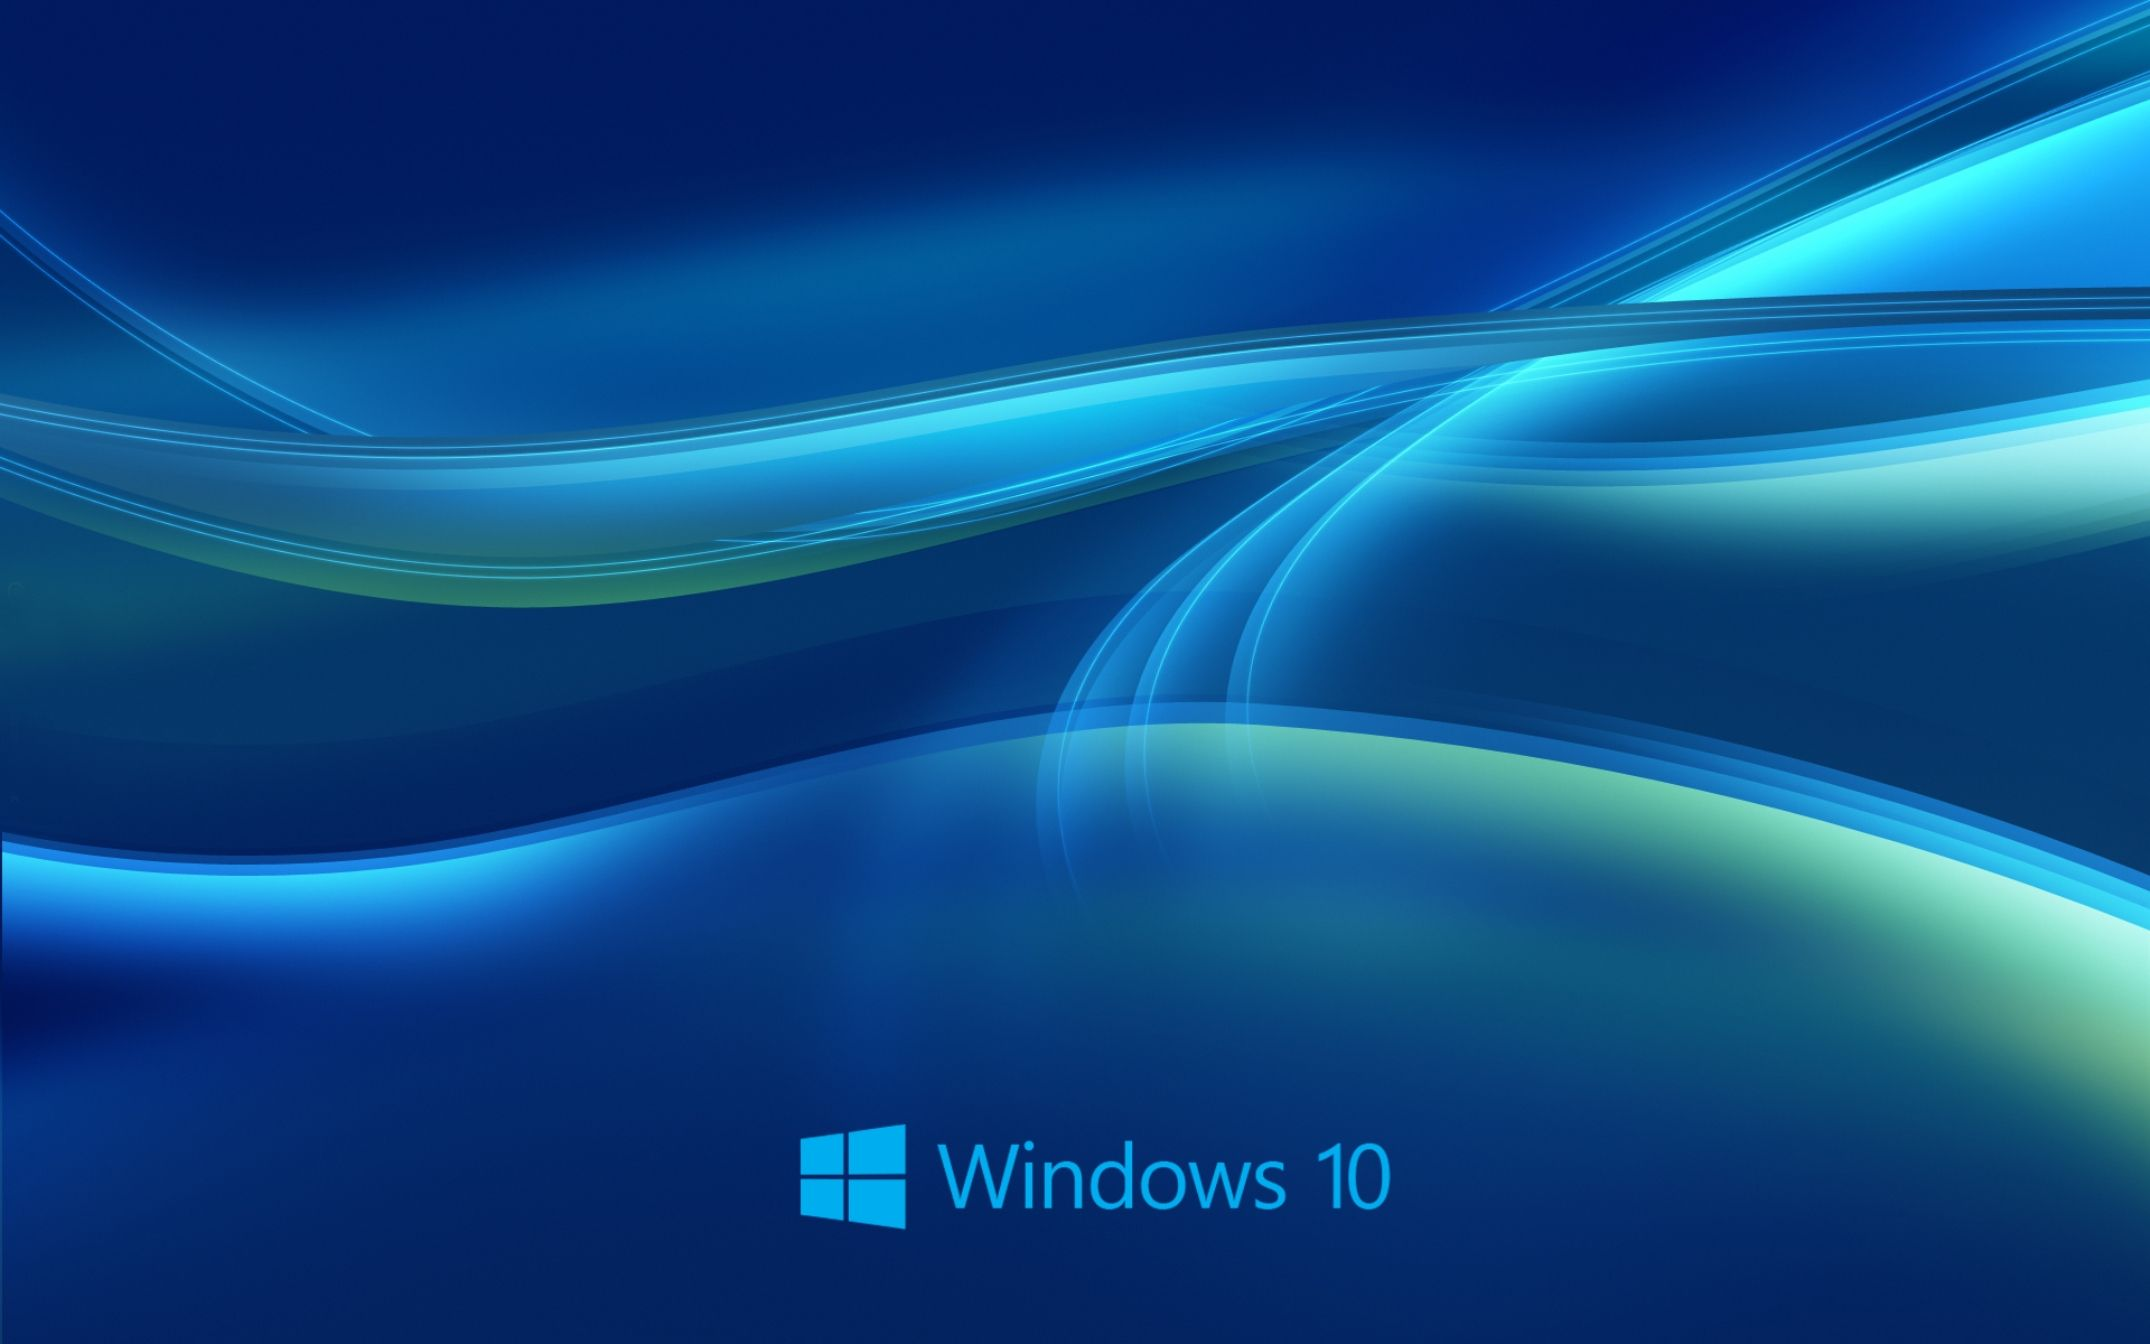 windows 10 full hd wallpaper | computers | pinterest | windows 10